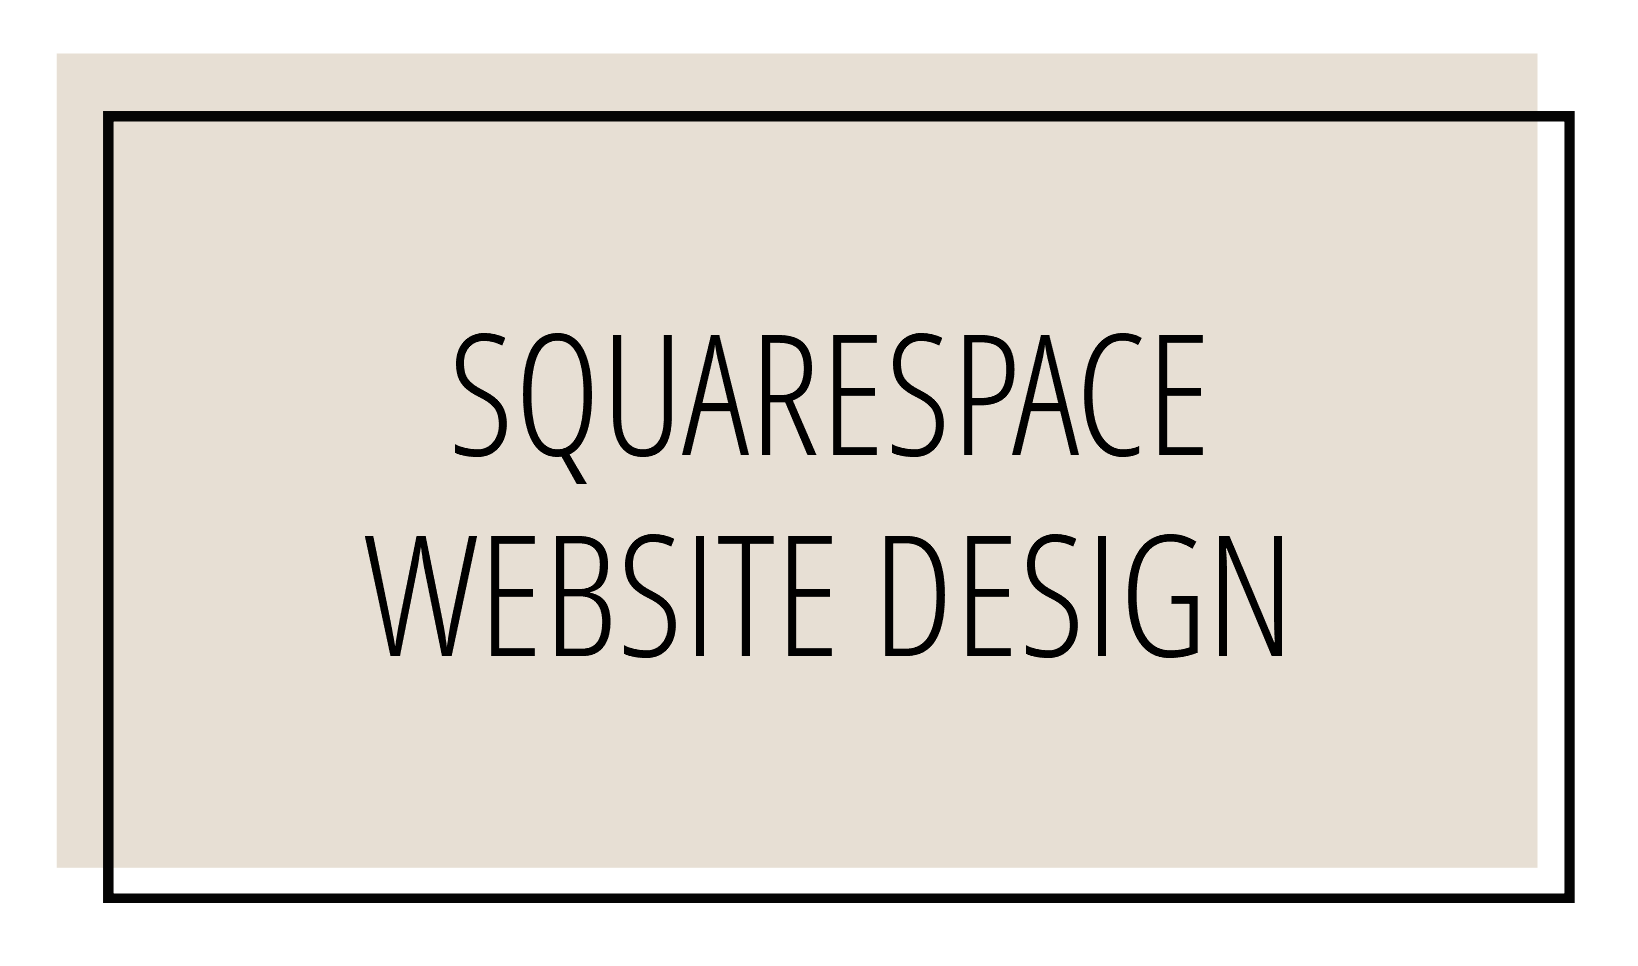 Squarespace Website Design Andrea K Chapman